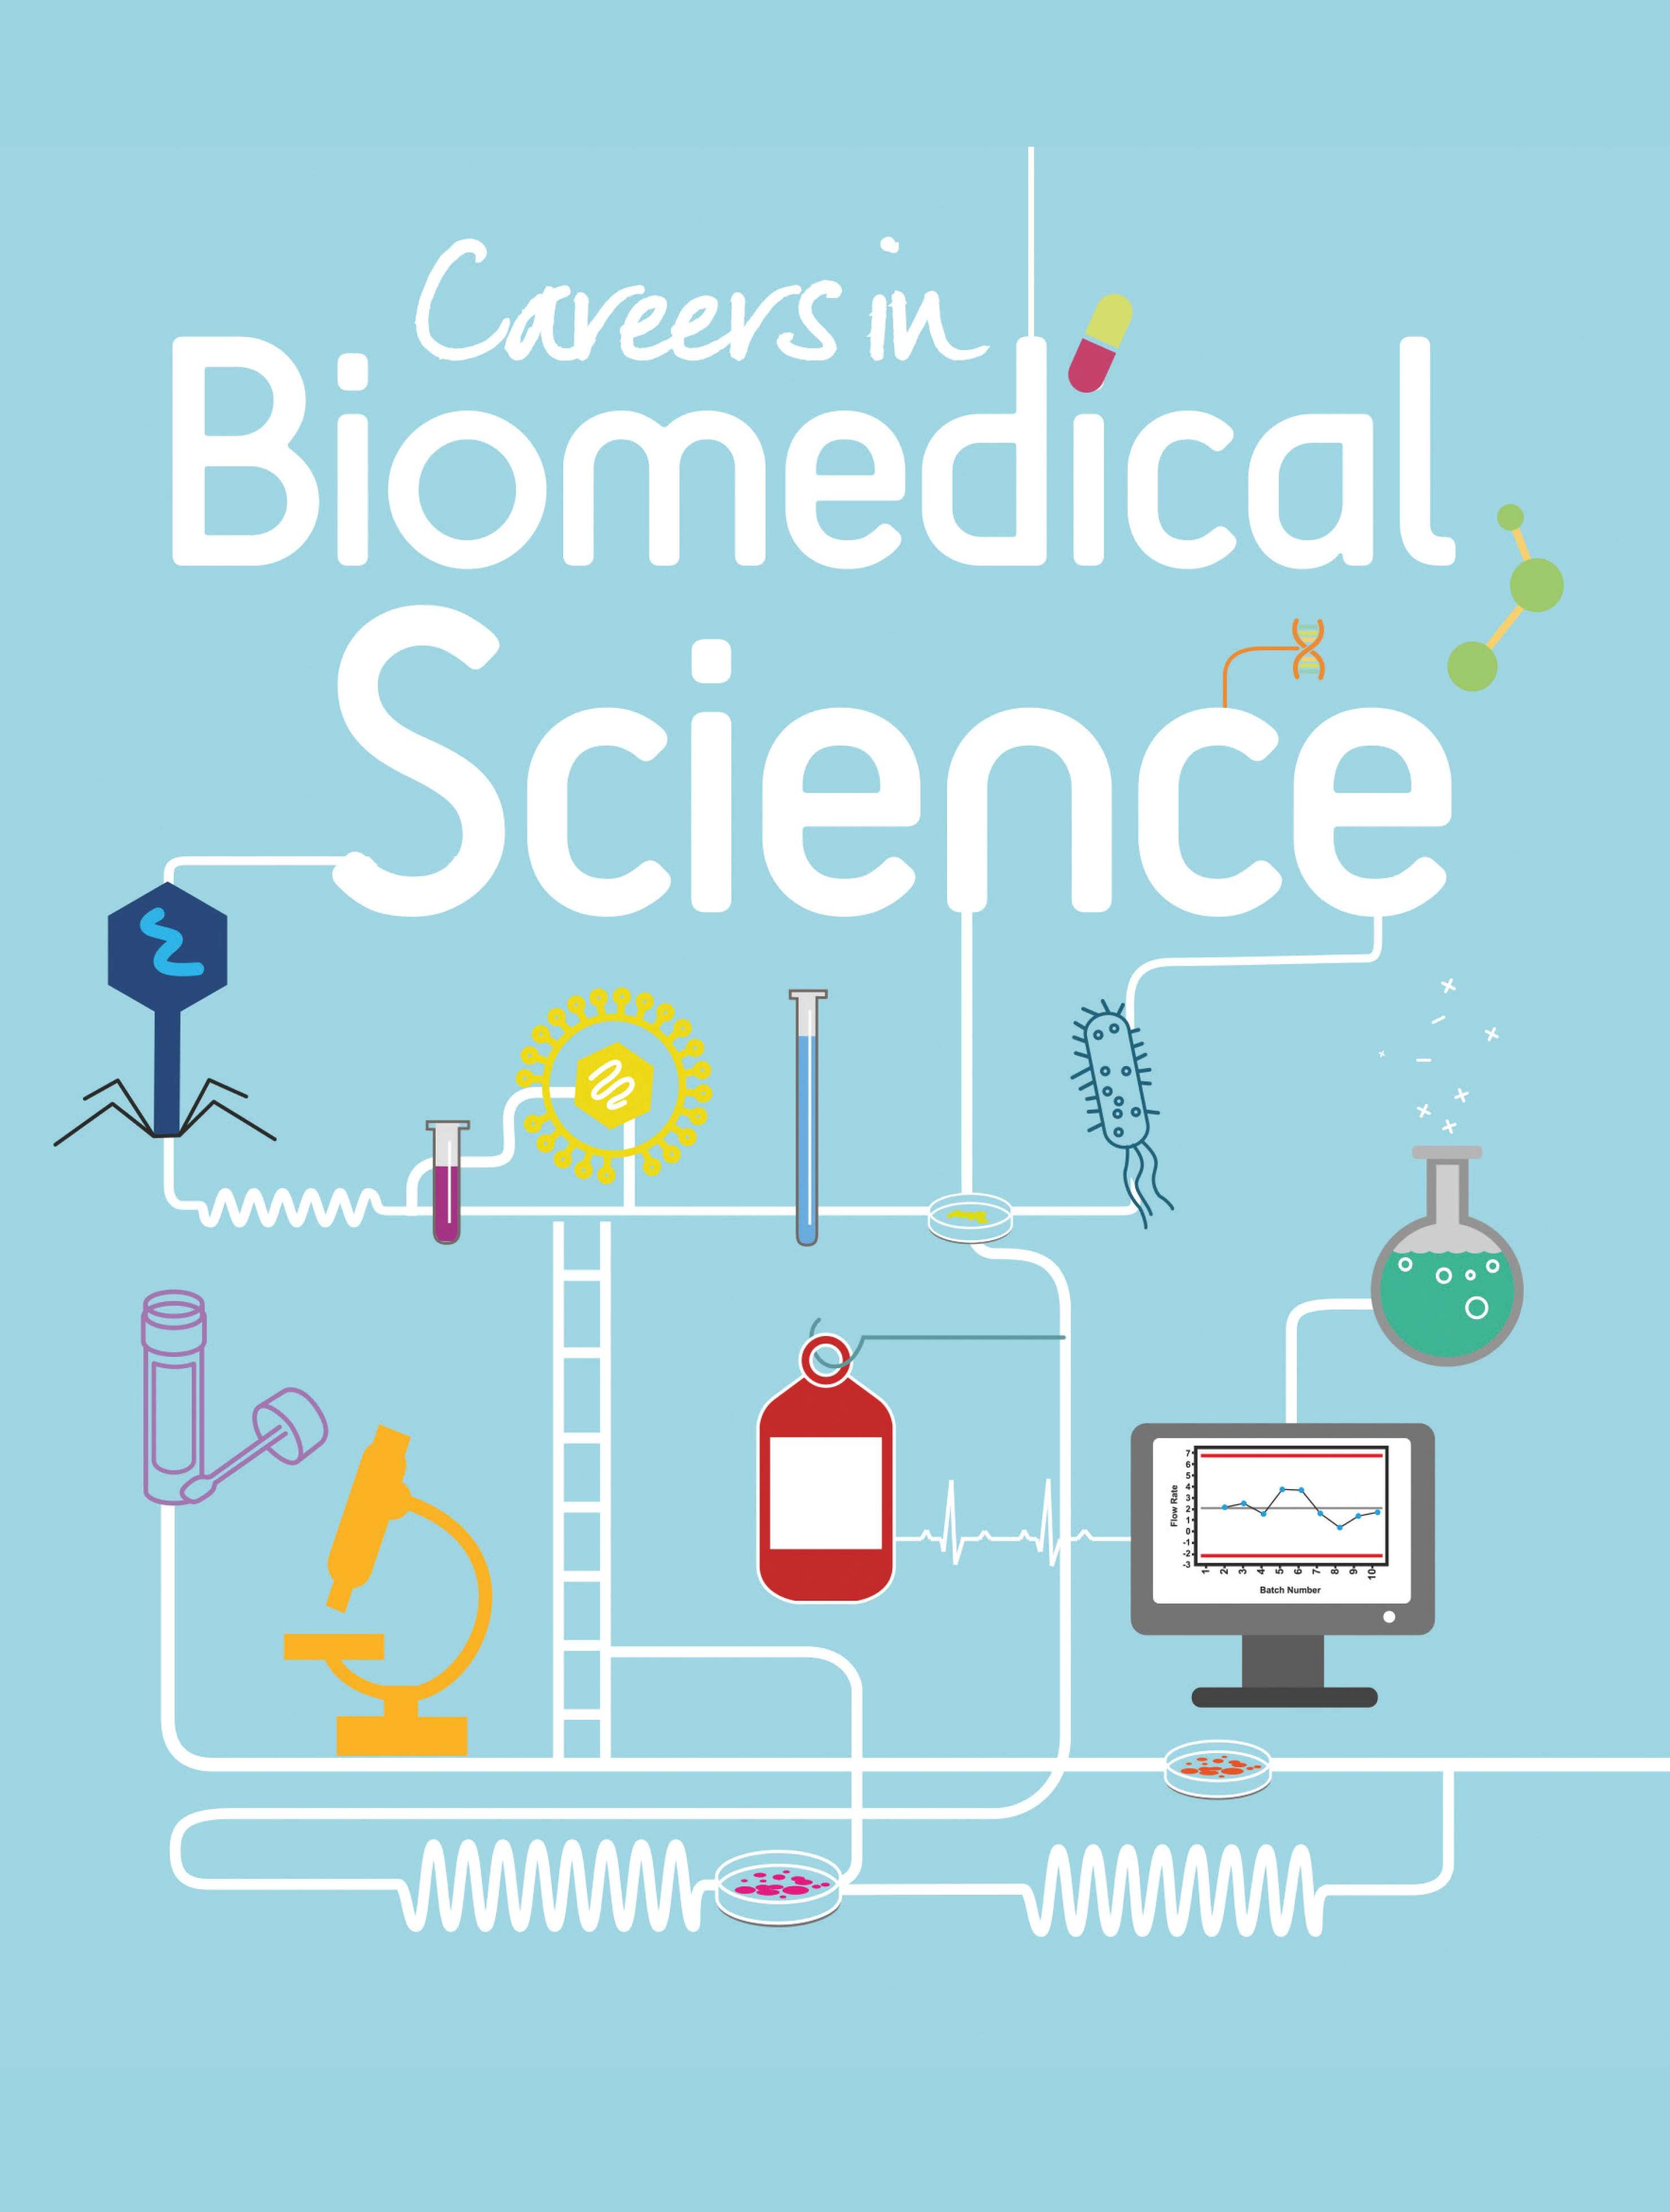 how to become a biomedical scientist uk